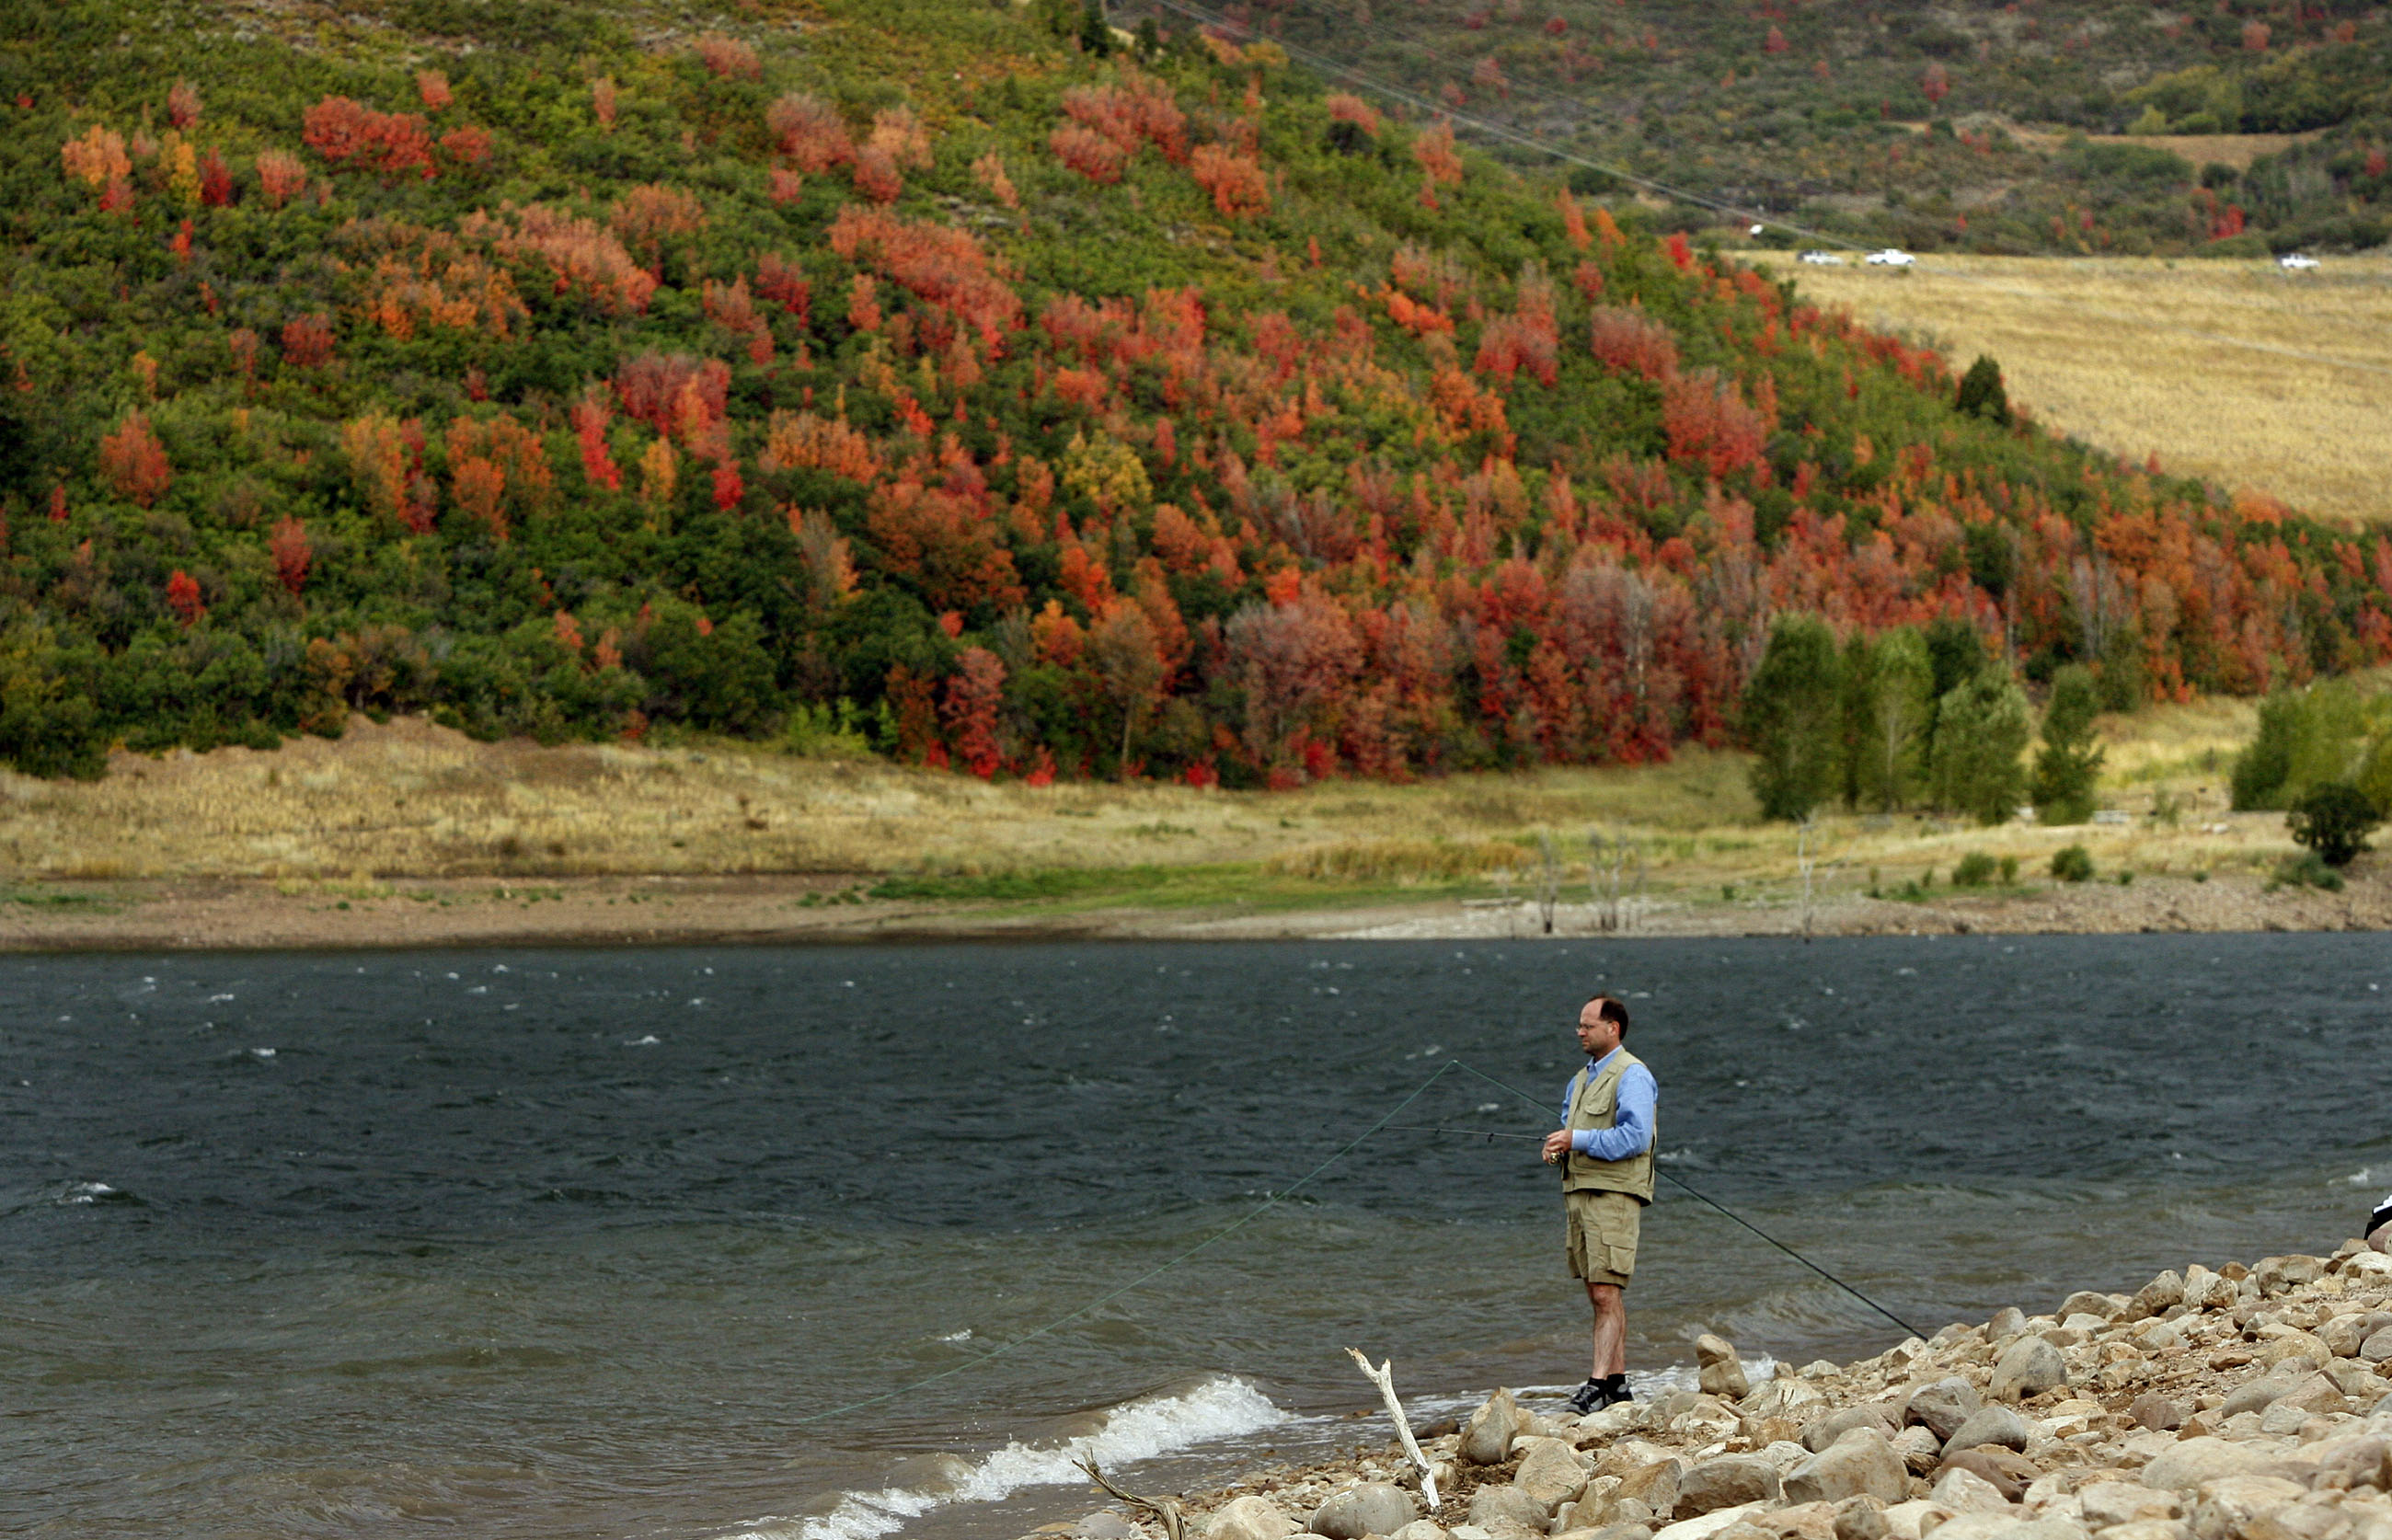 A fly fisherman enjoys the fall scenery as he fishes on Jordanelle Reservoir in Summit County, Utah.